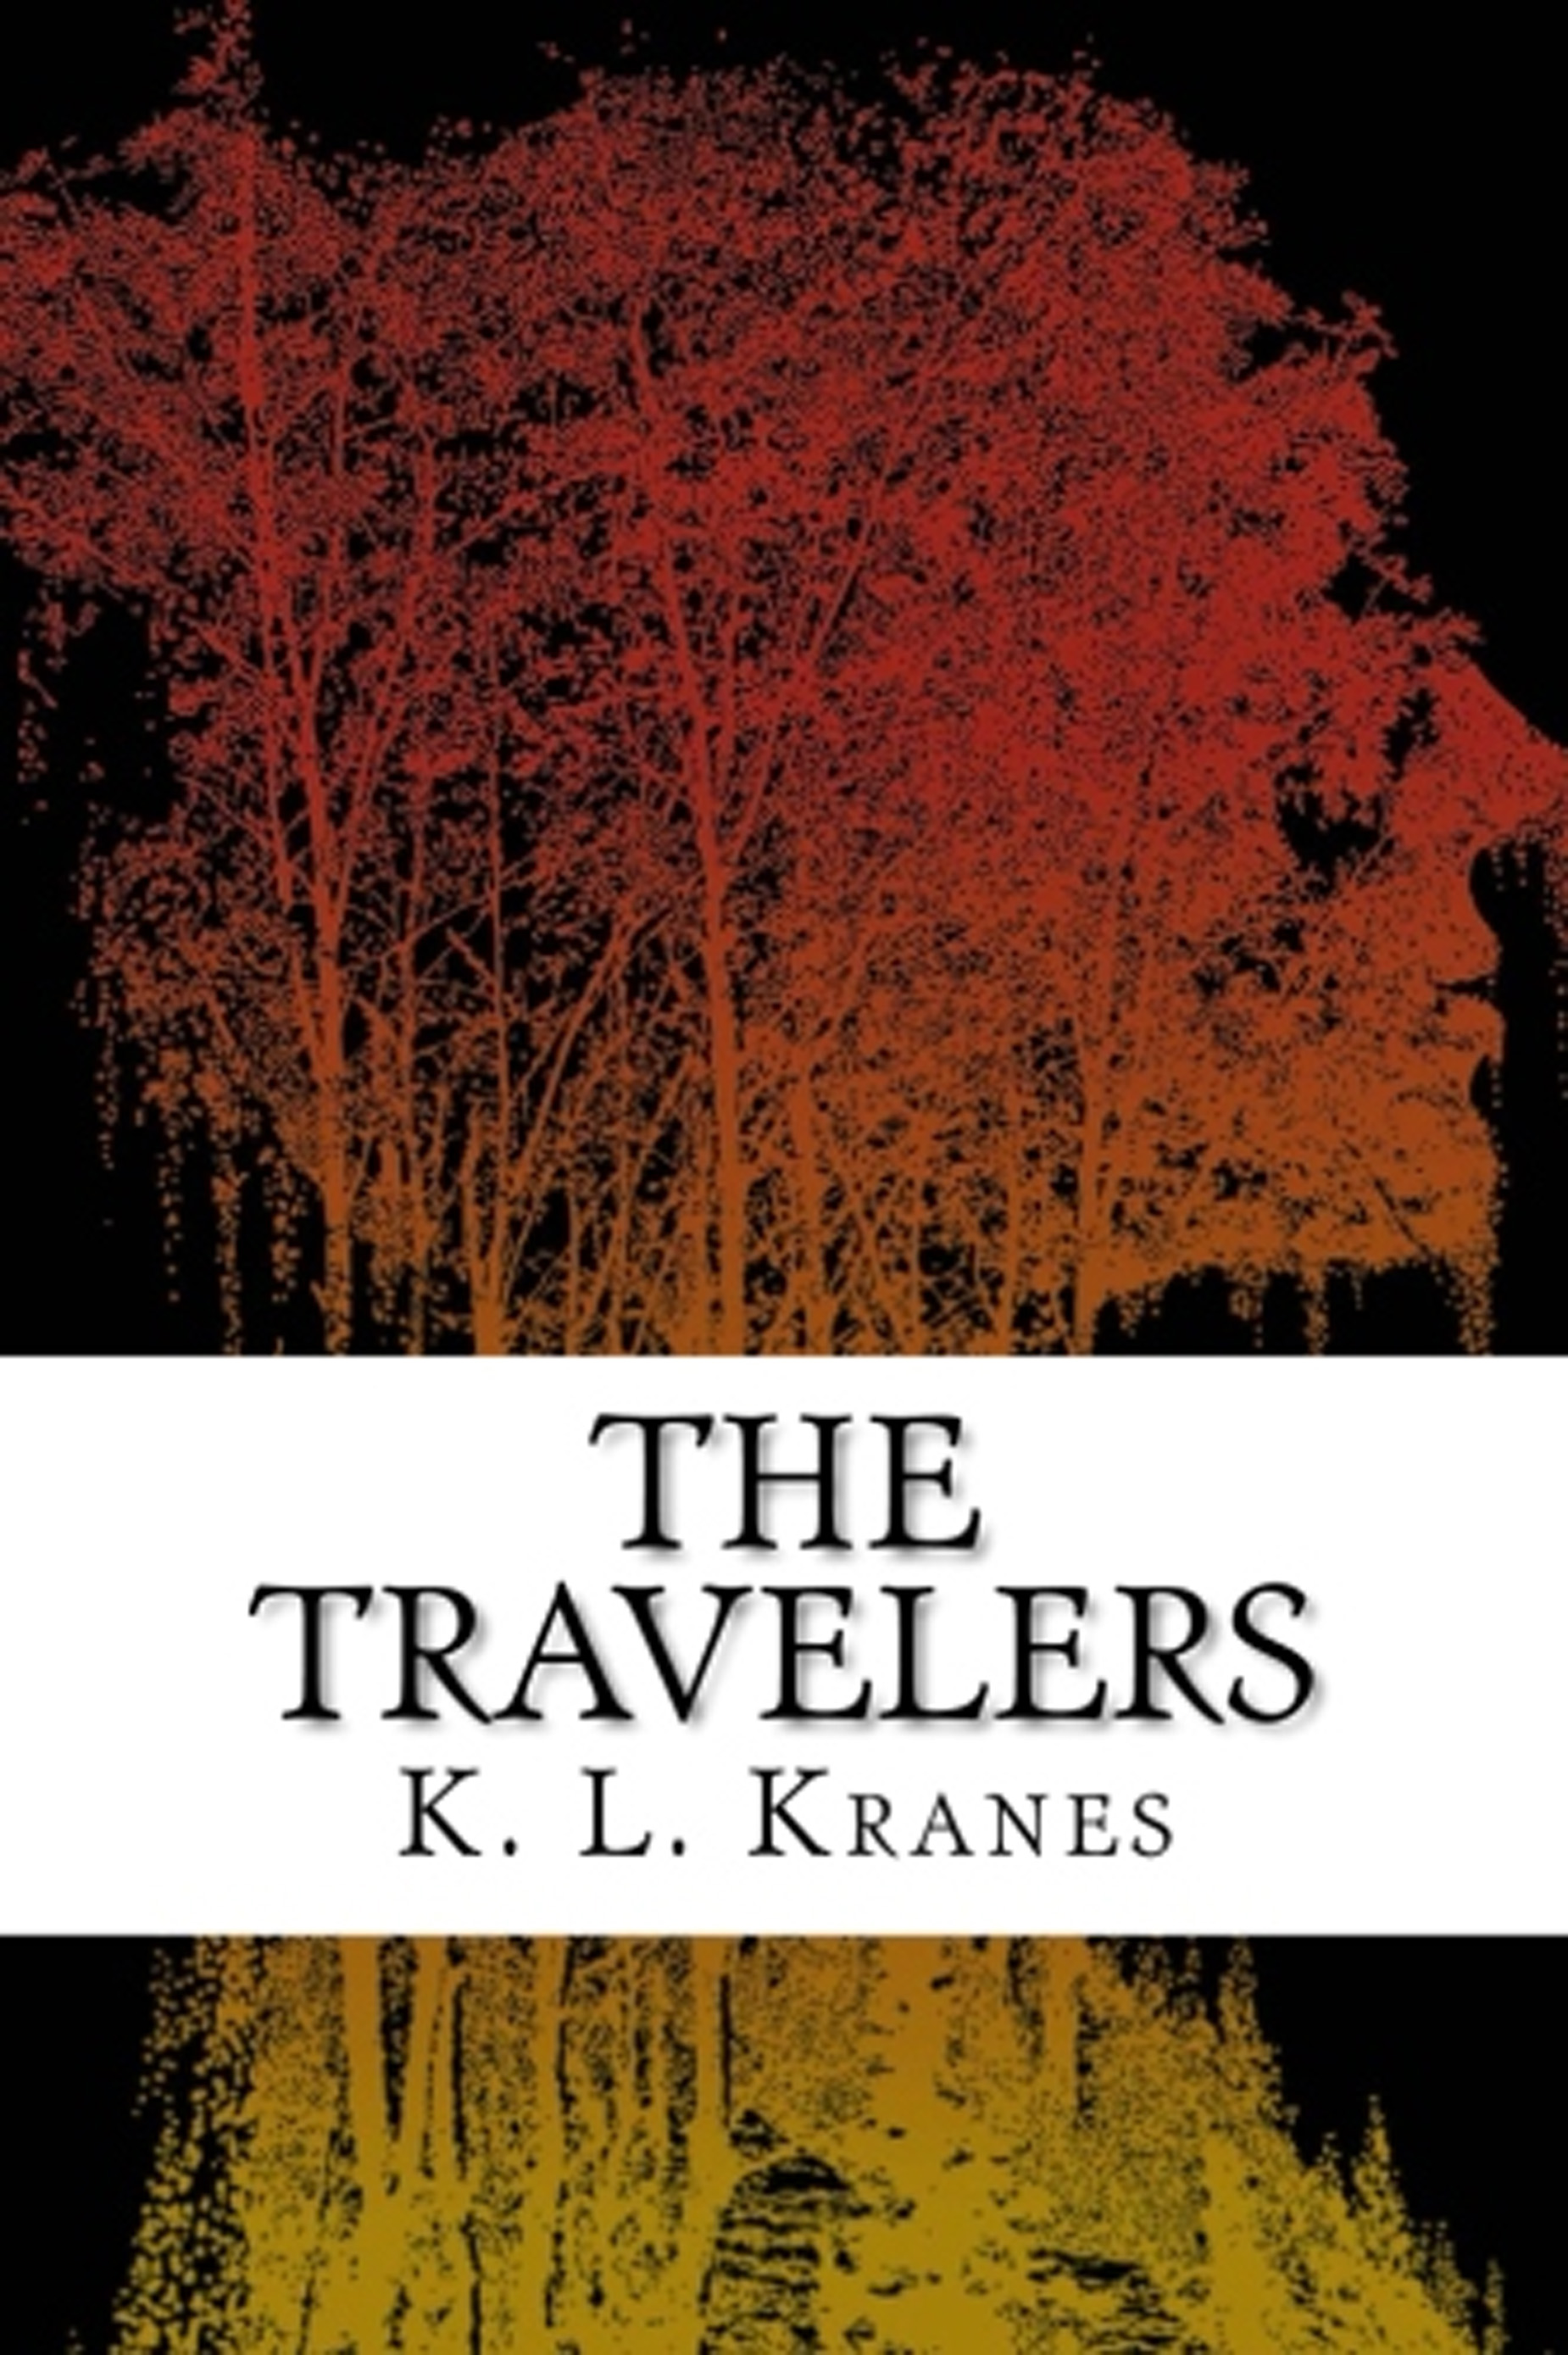 The Travelers By K. L. Kranes